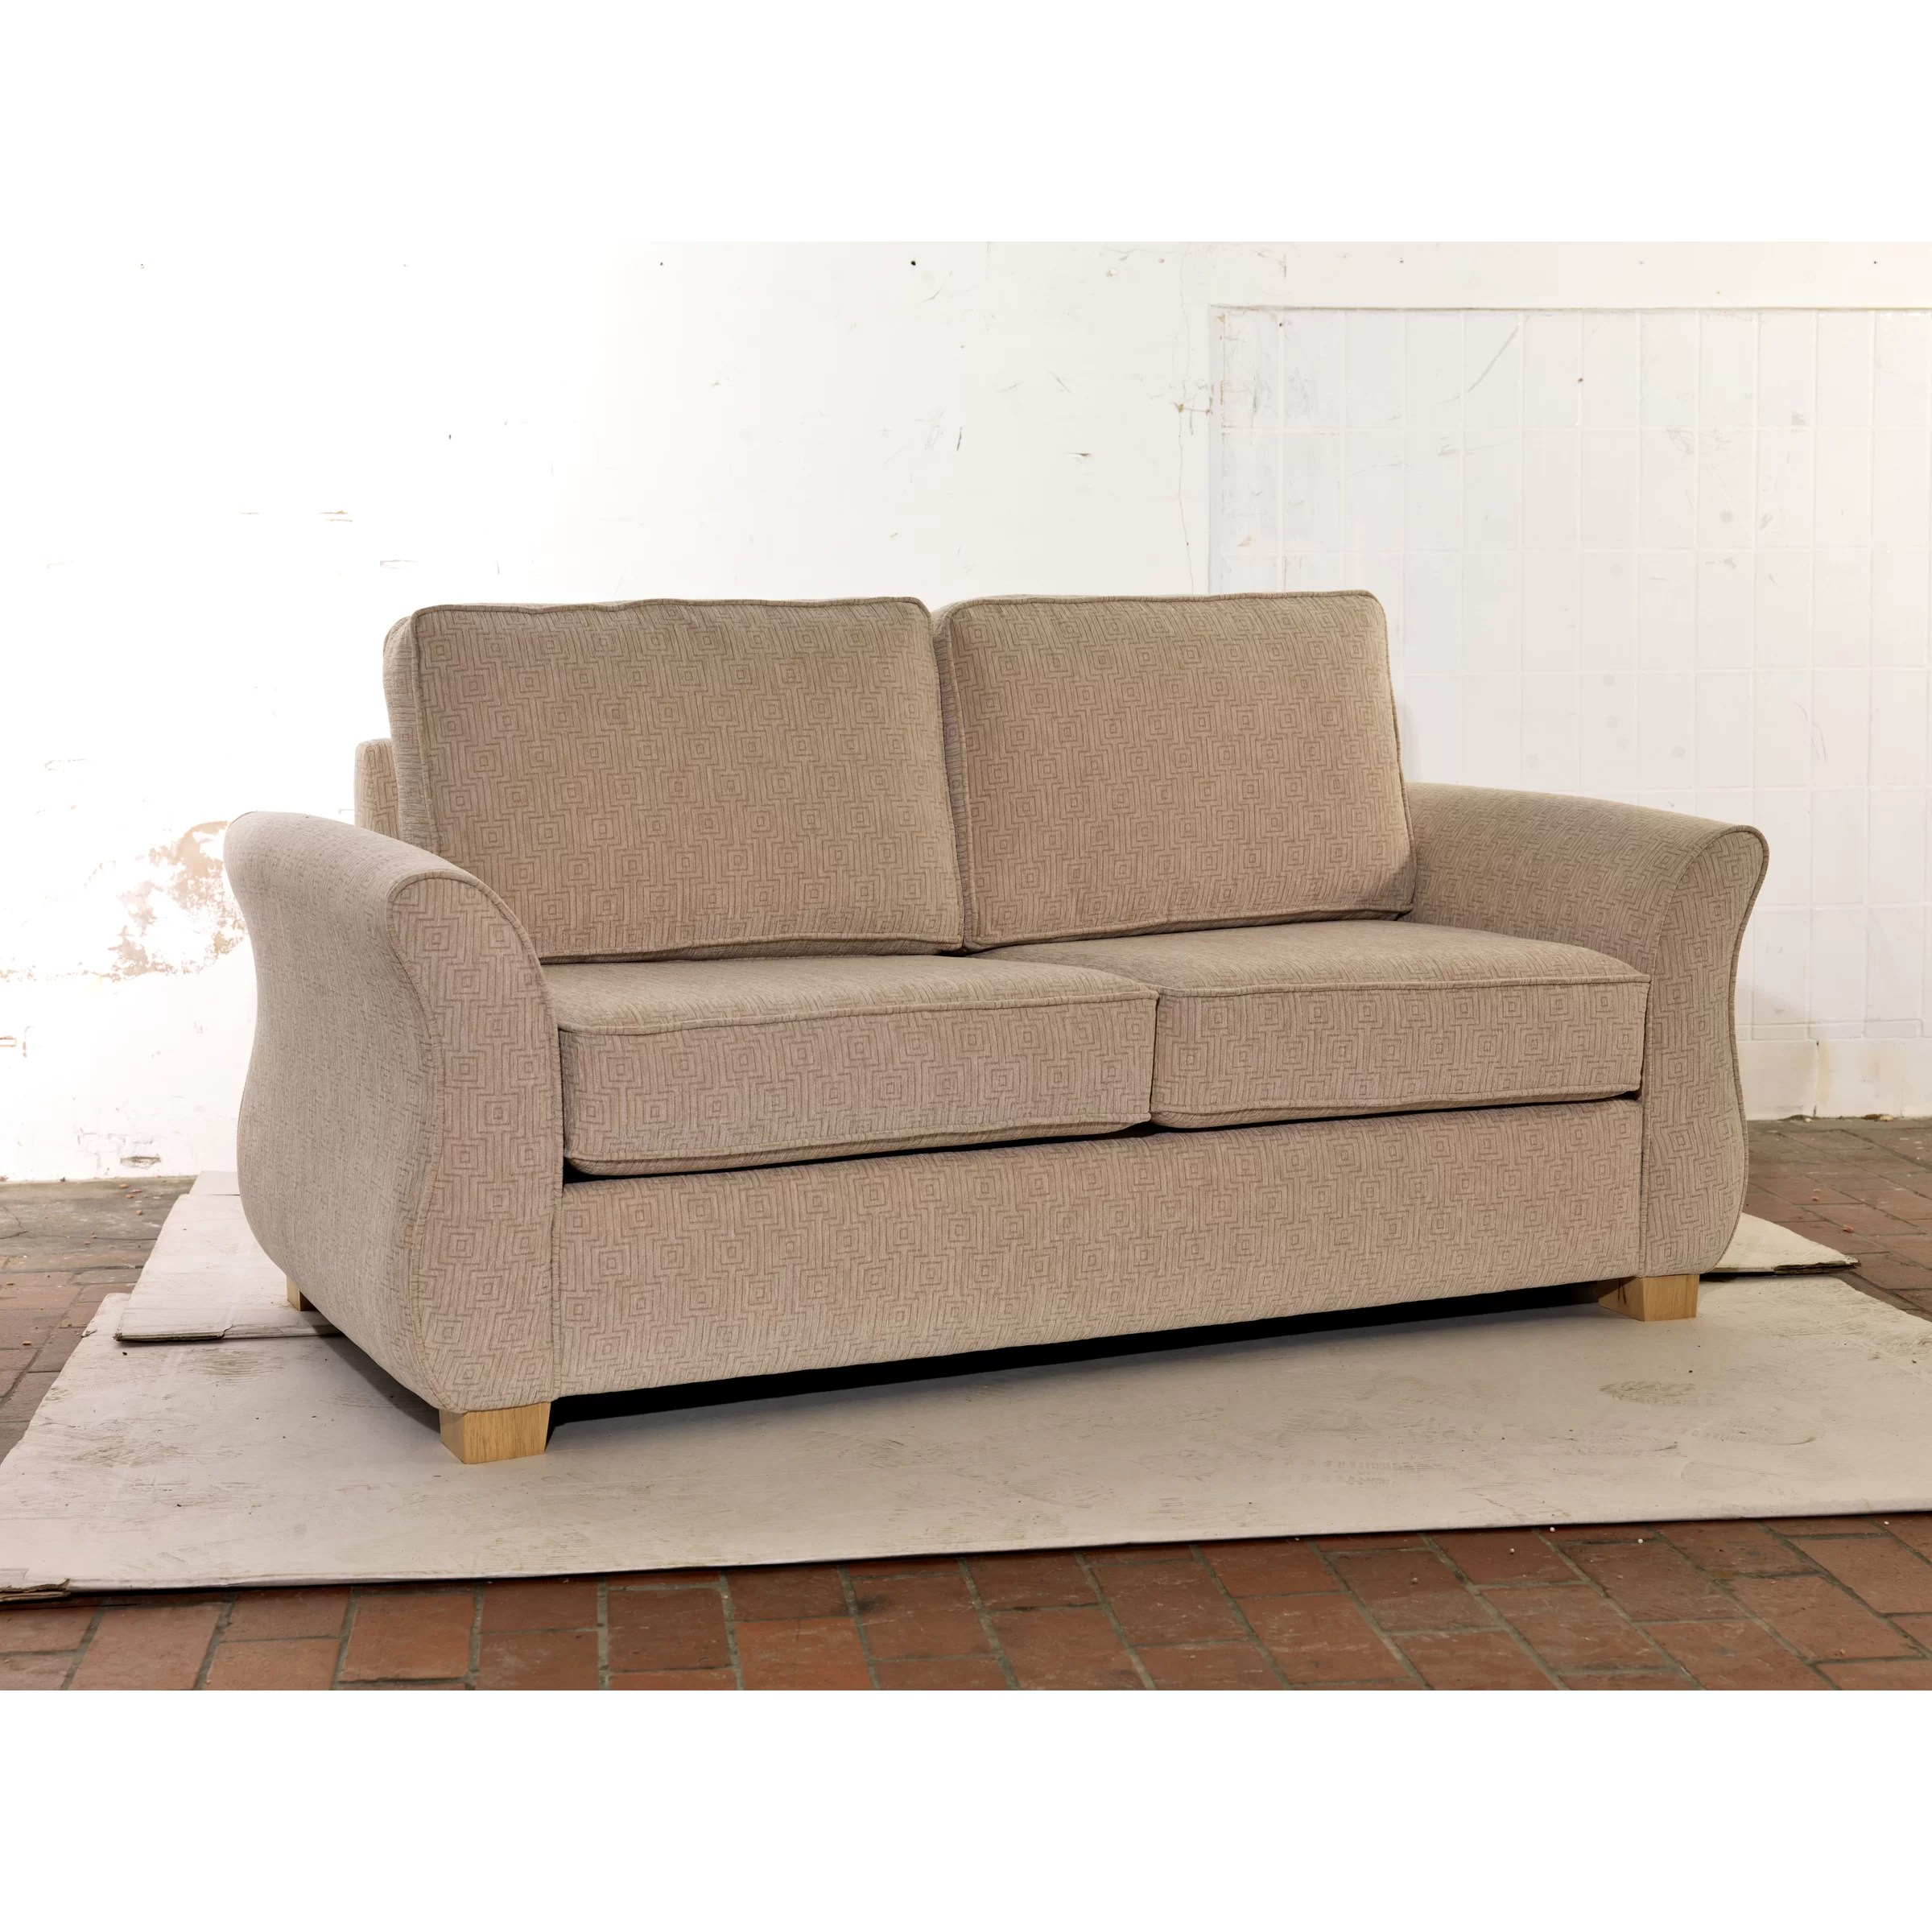 fold out sofa bed uk contemporary sectional with chaise icon design egginton 2 seater wayfair